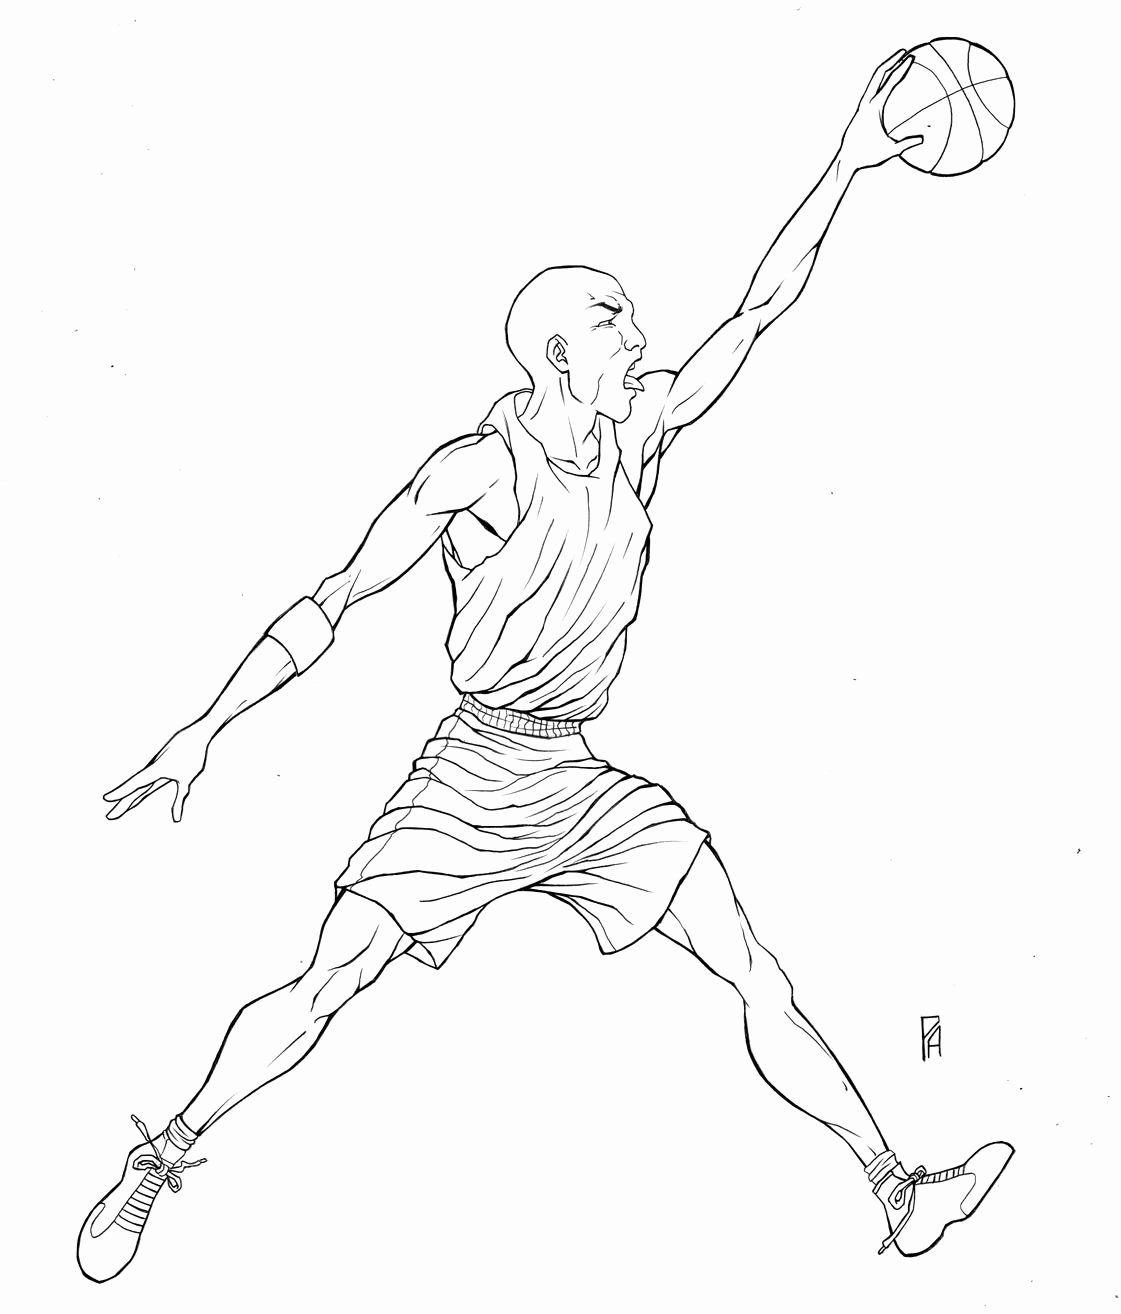 Basketball Player Coloring Sheet Lovely Jordan Coloring Pages In 2020 Coloring Pages Coloring Pages Inspirational Color